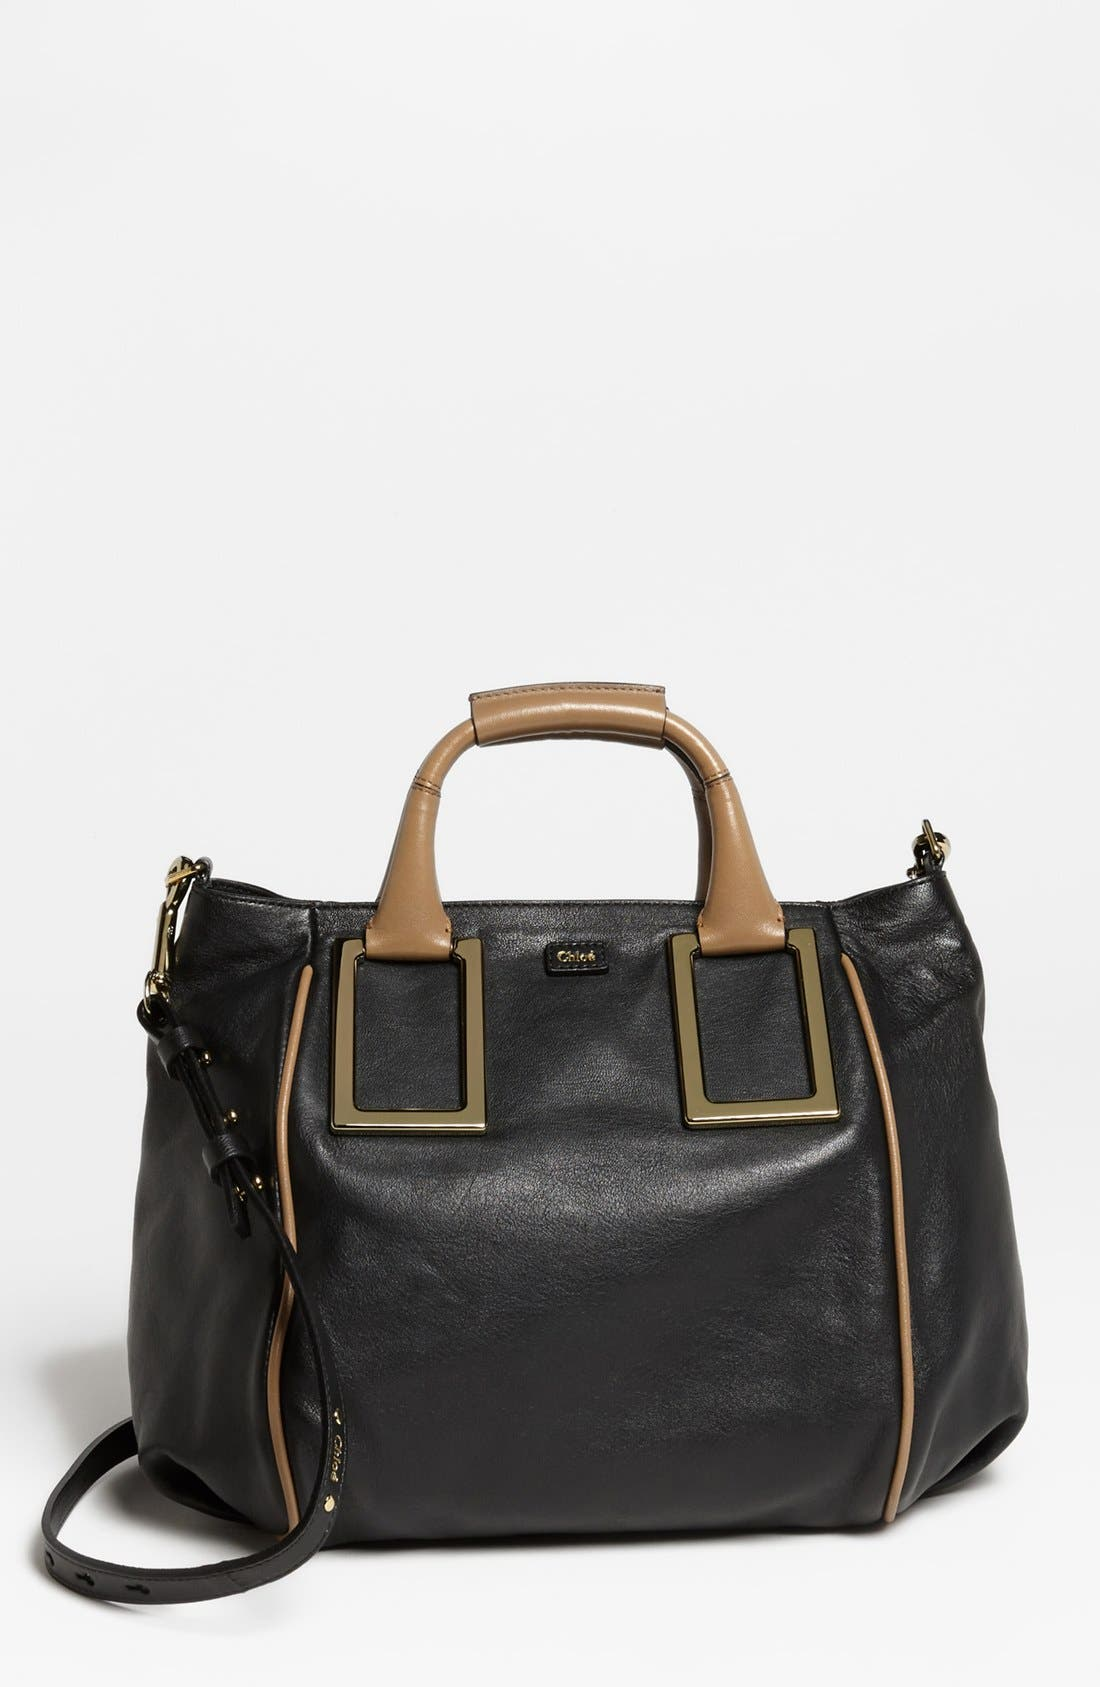 Alternate Image 1 Selected - Chloé 'Ethel - Medium' Leather Tote